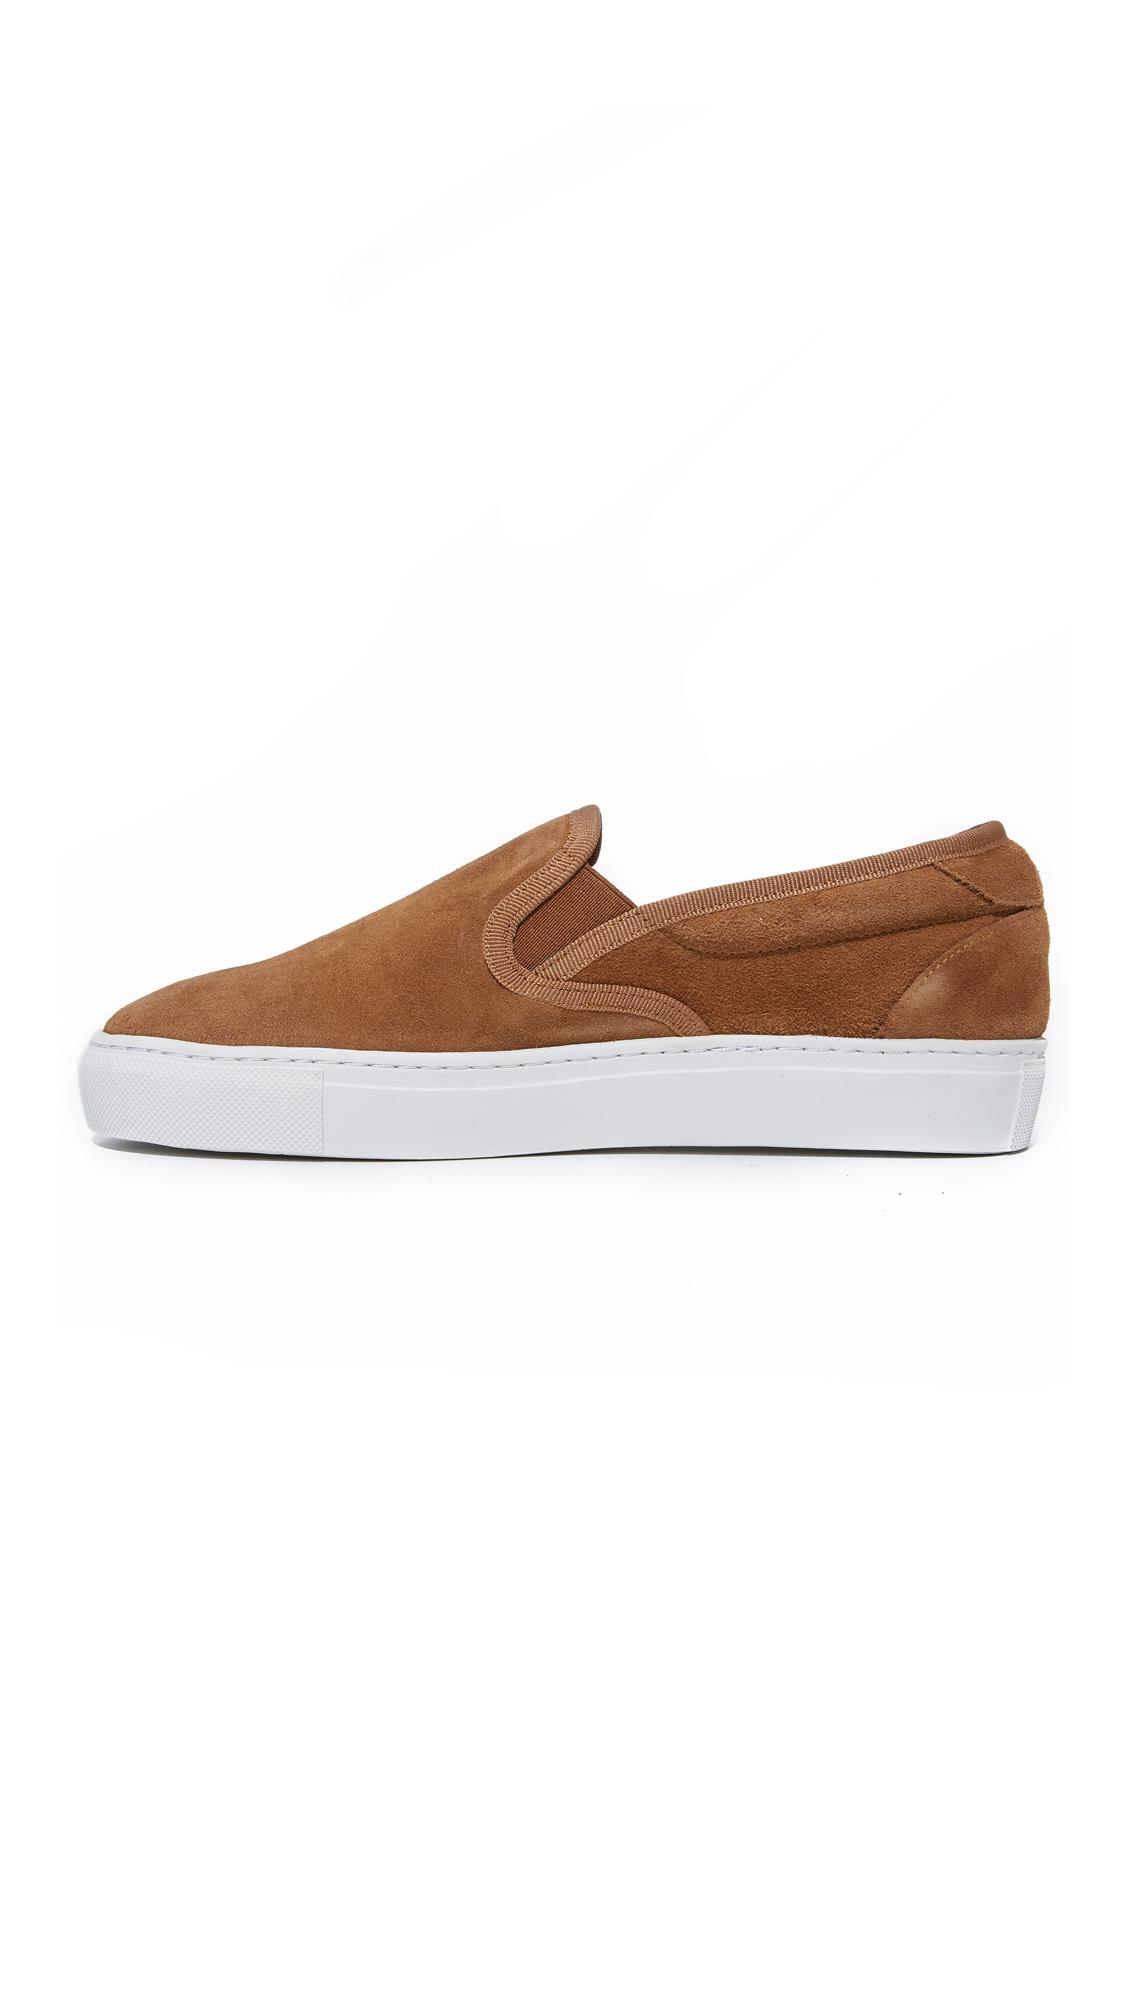 Gallery. Previously sold at: Shopbop · Women's Slip On Sneakers